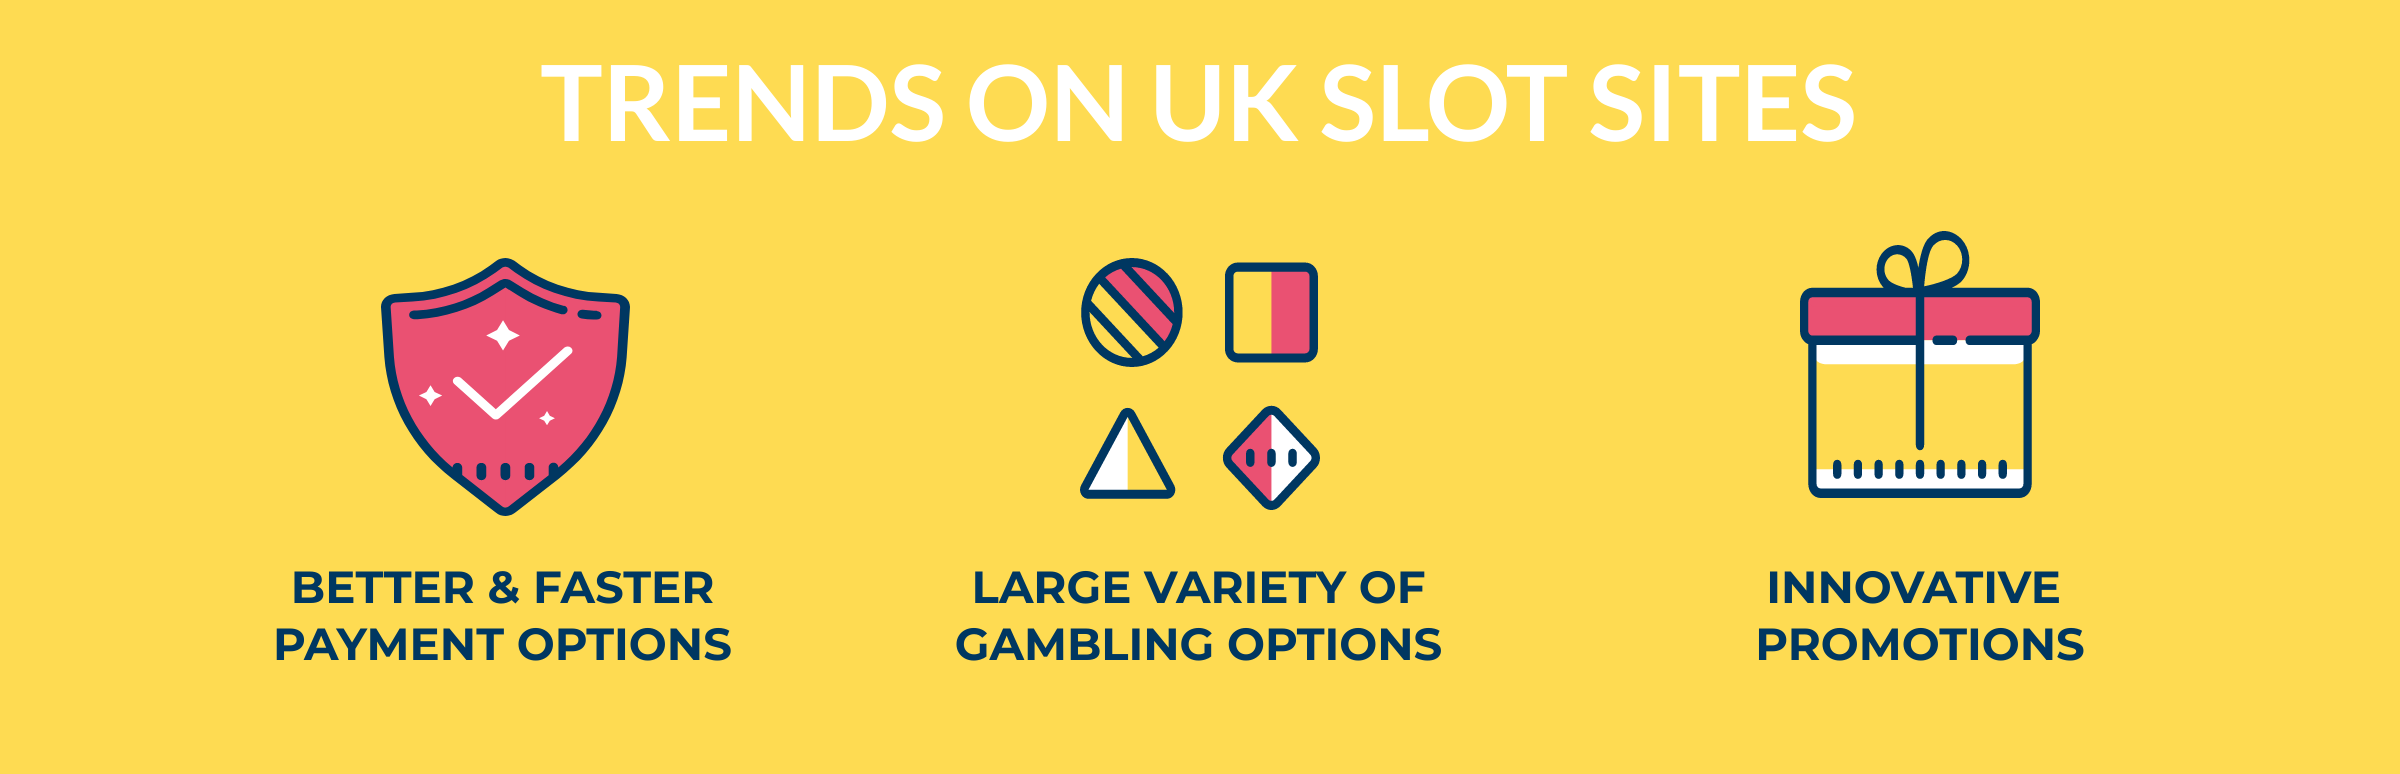 Trends on UK slot sites